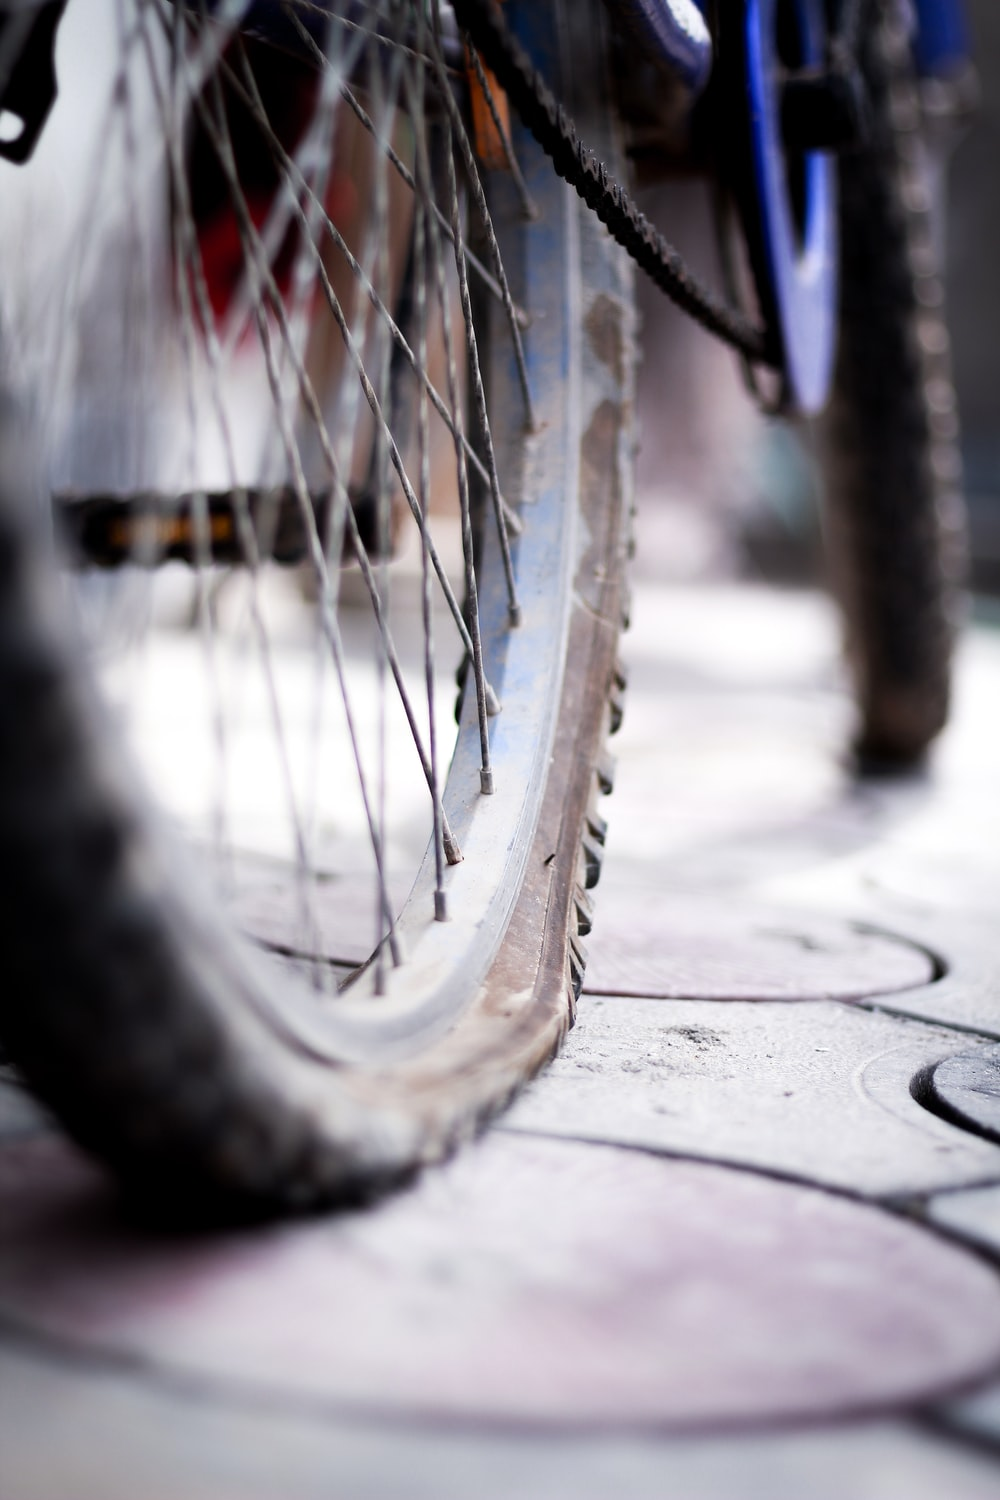 bicycle wheel with tire on concrete pavement